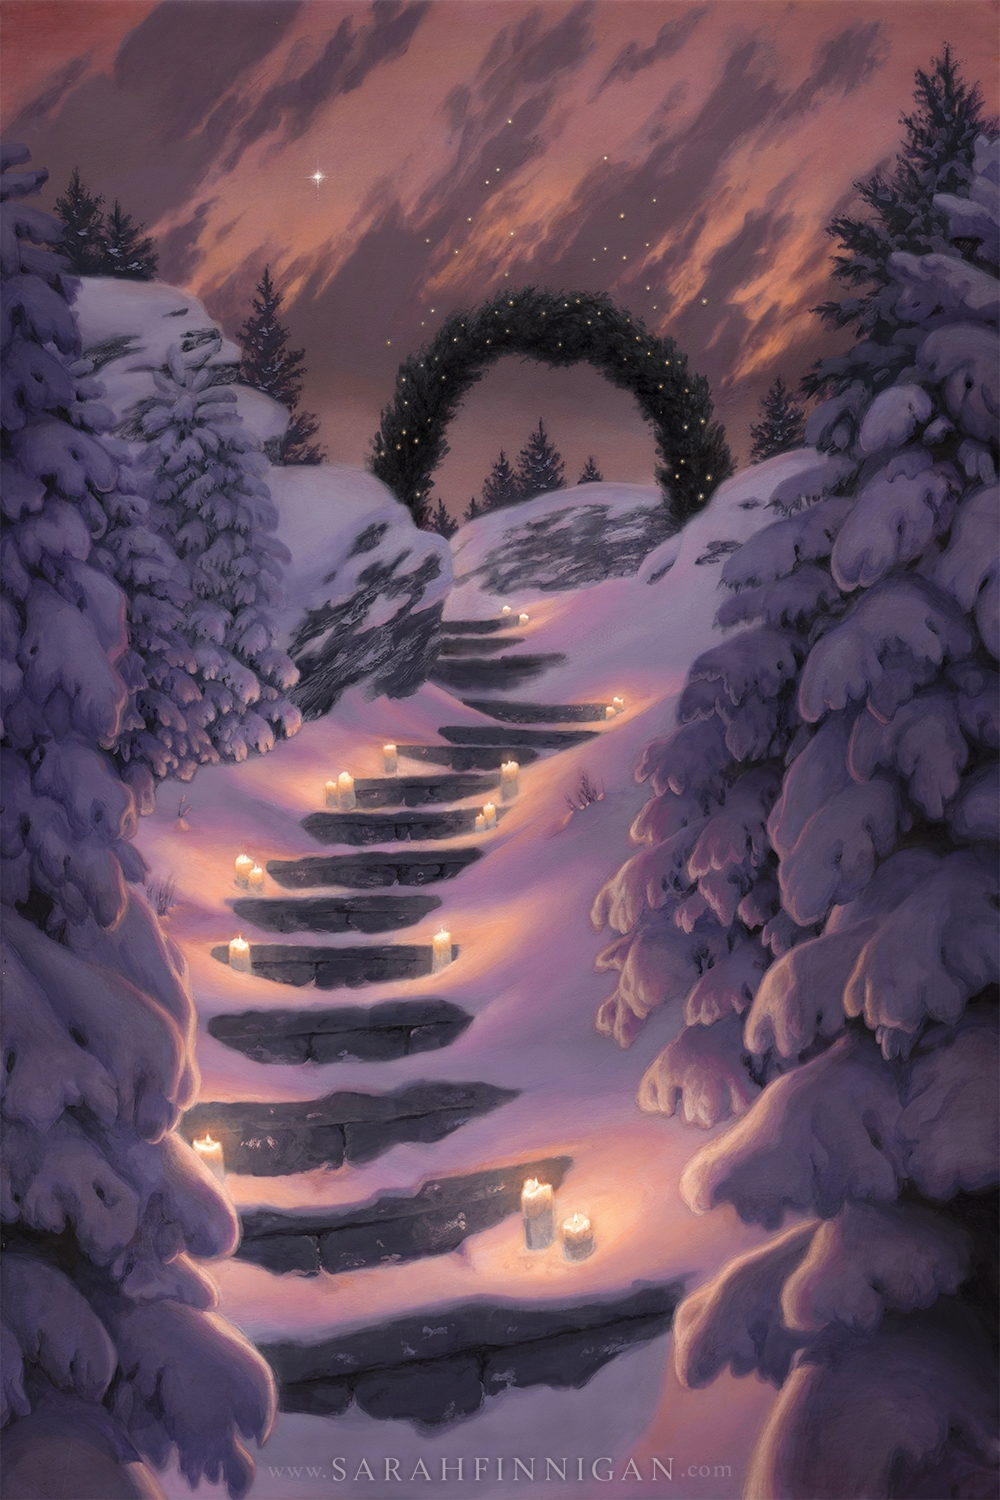 The Warmth of Winter Comic Art